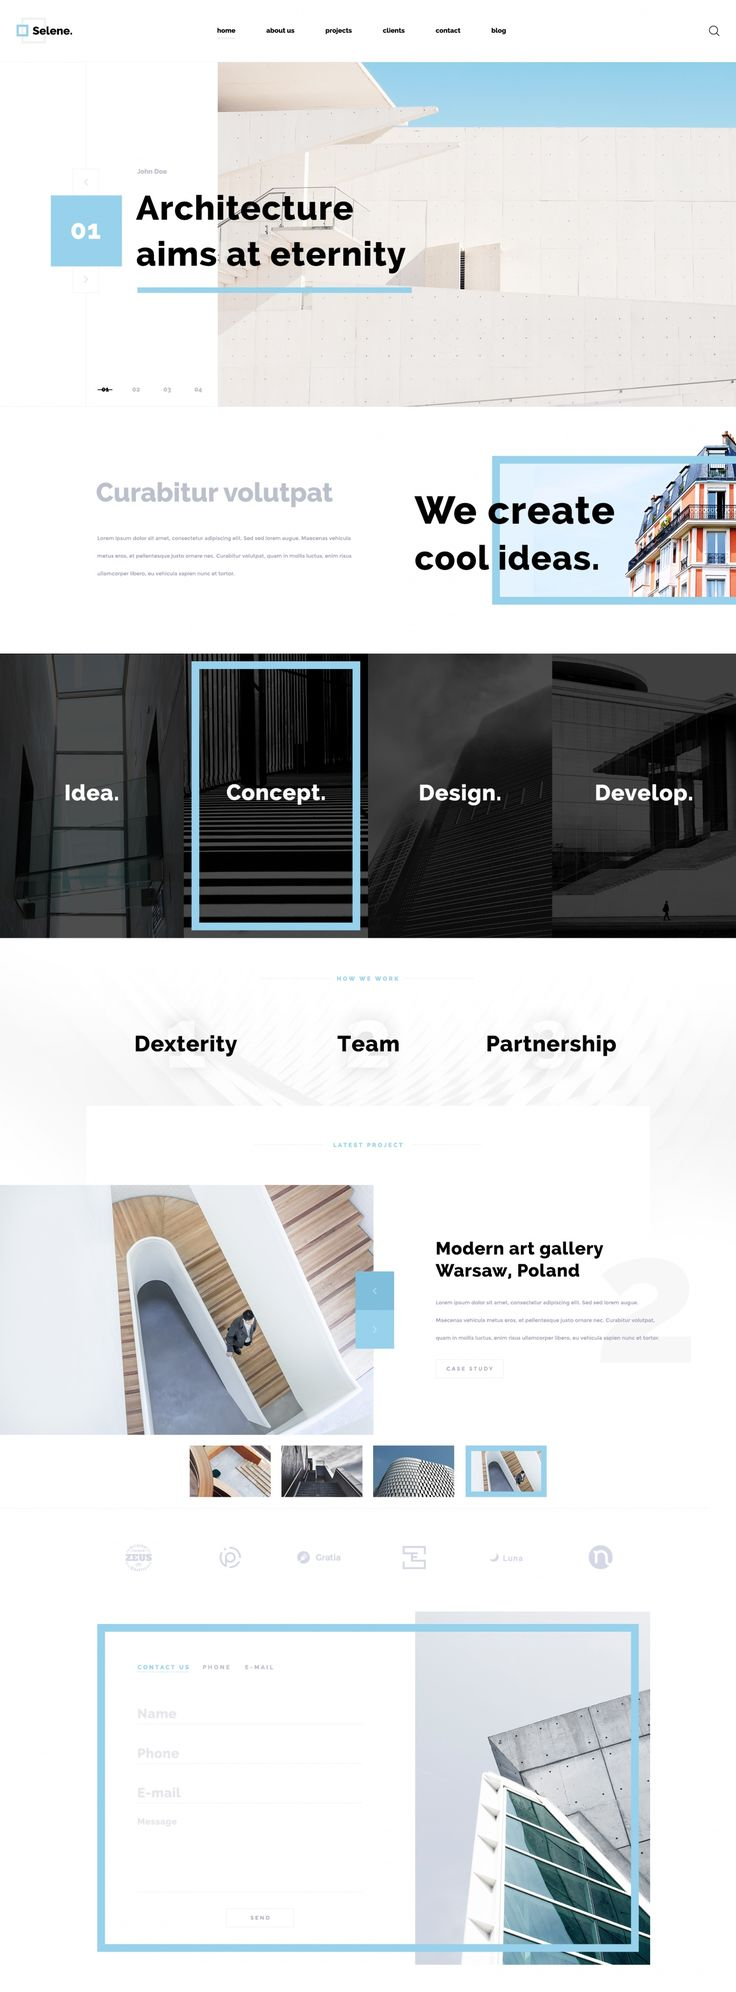 This template is a perfect choice for construction companies that need modern design architect websites. #freebie http://ow.ly/tXgY303BThV